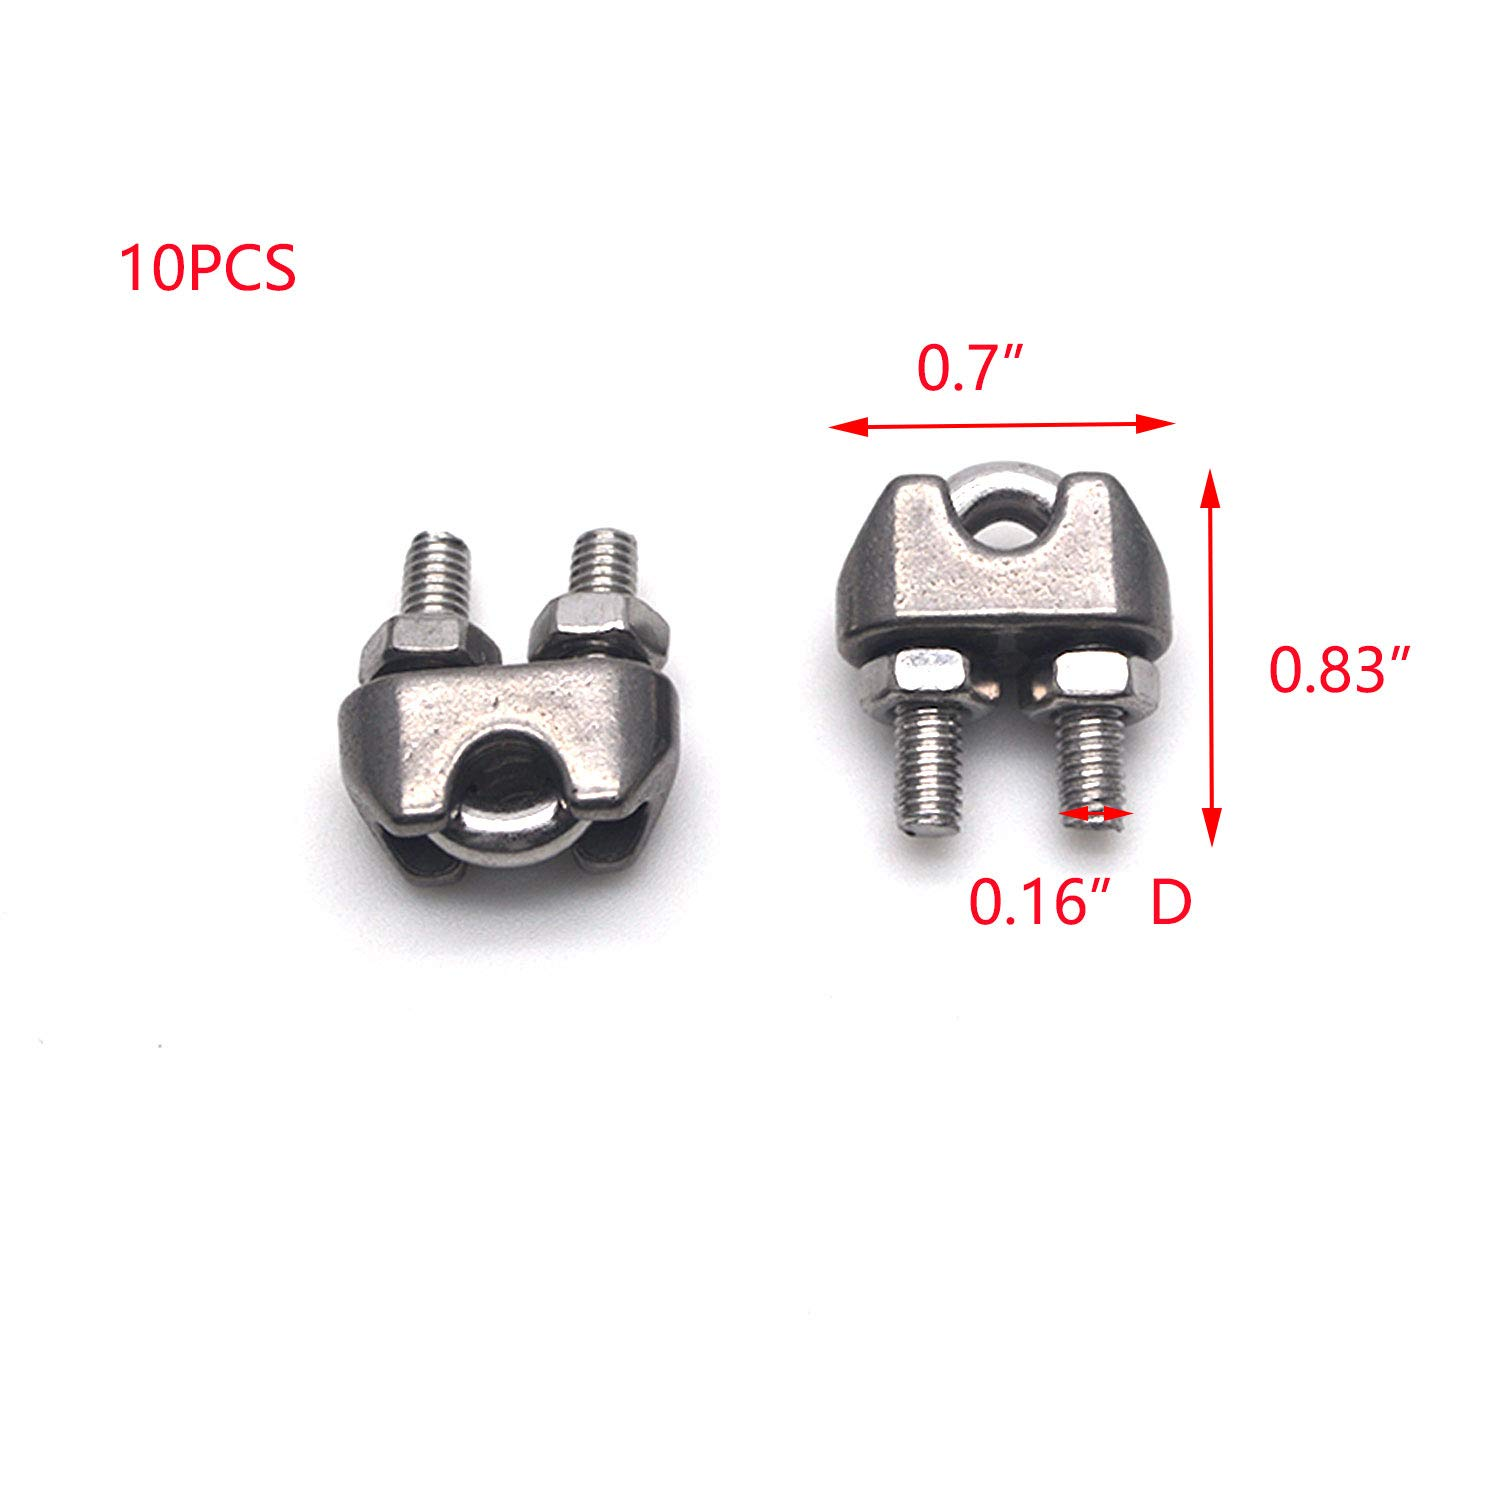 Tulead 10PCS Wire Rope Clamps Stainless Steel Wire Rigging Cable Lock Clips 0.16 Diameter